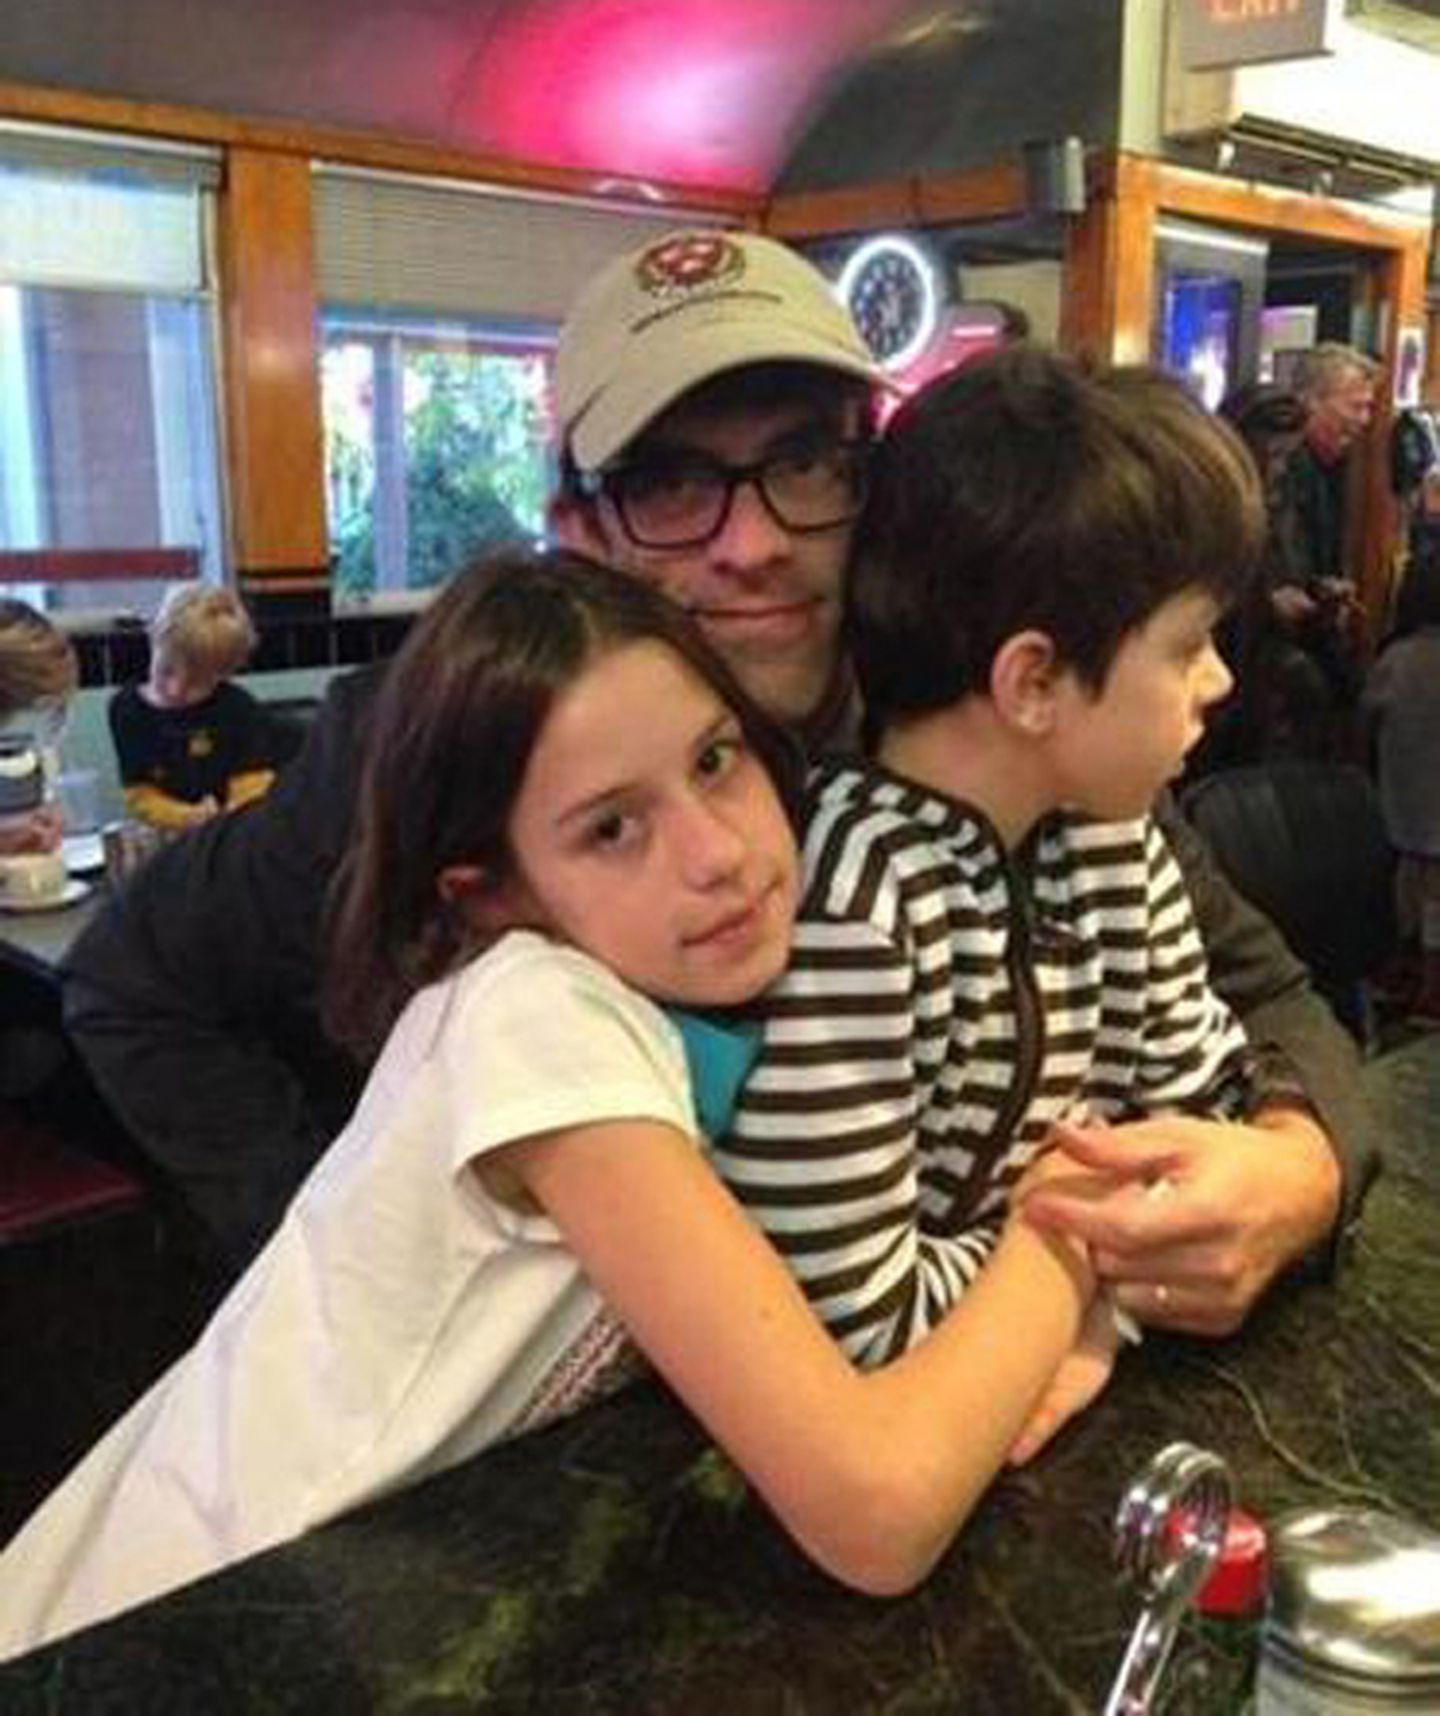 An Open Letter To Our Local Diner Thank You For Welcoming Our Autistic Son The Boston Globe